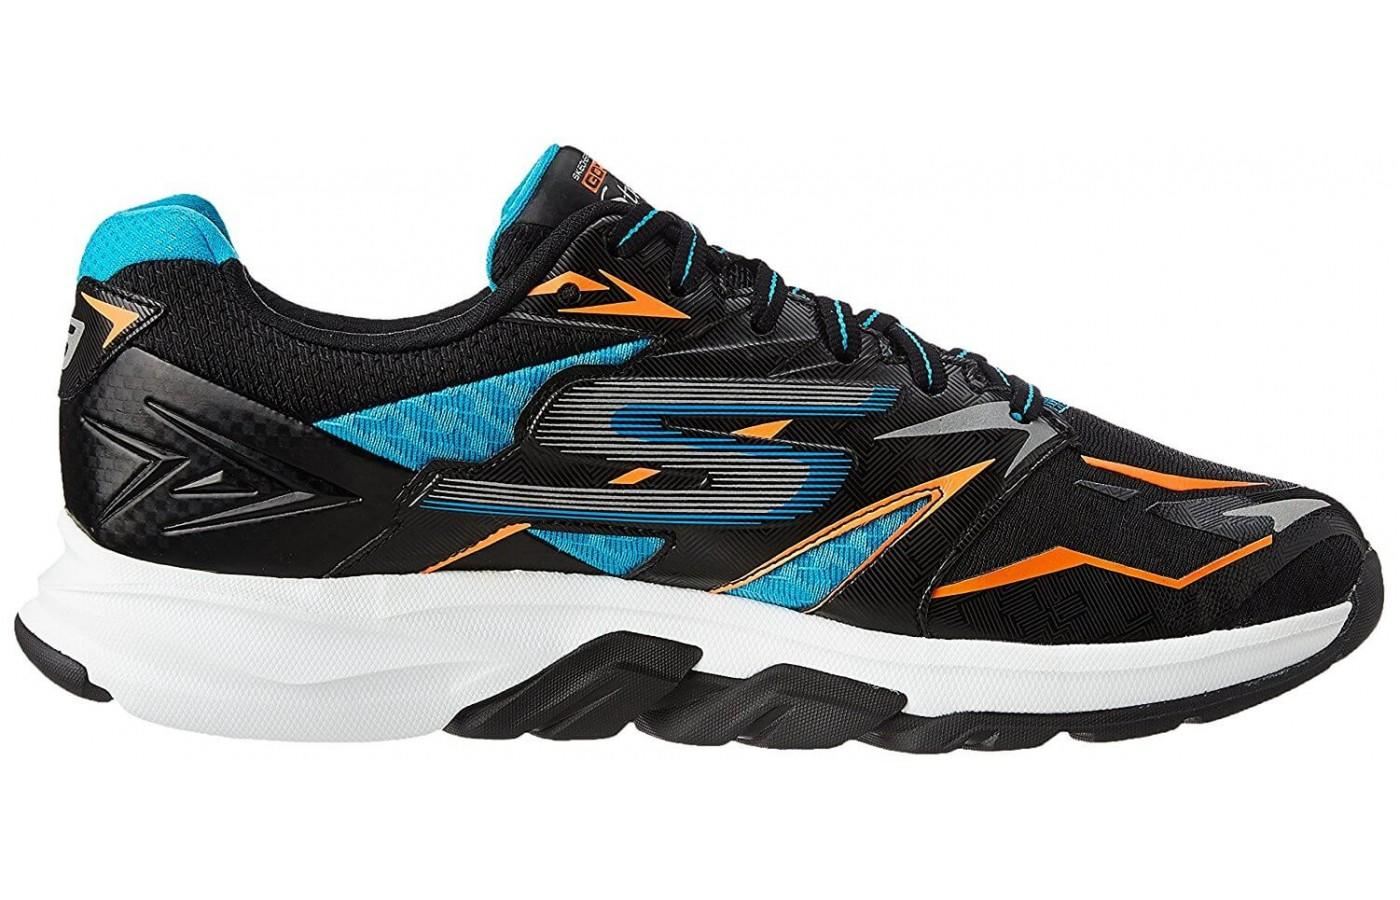 9fc9bf368 ... the Skechers GOrun Strada has a Layered Support Zone to stabilize the  midfoot ...